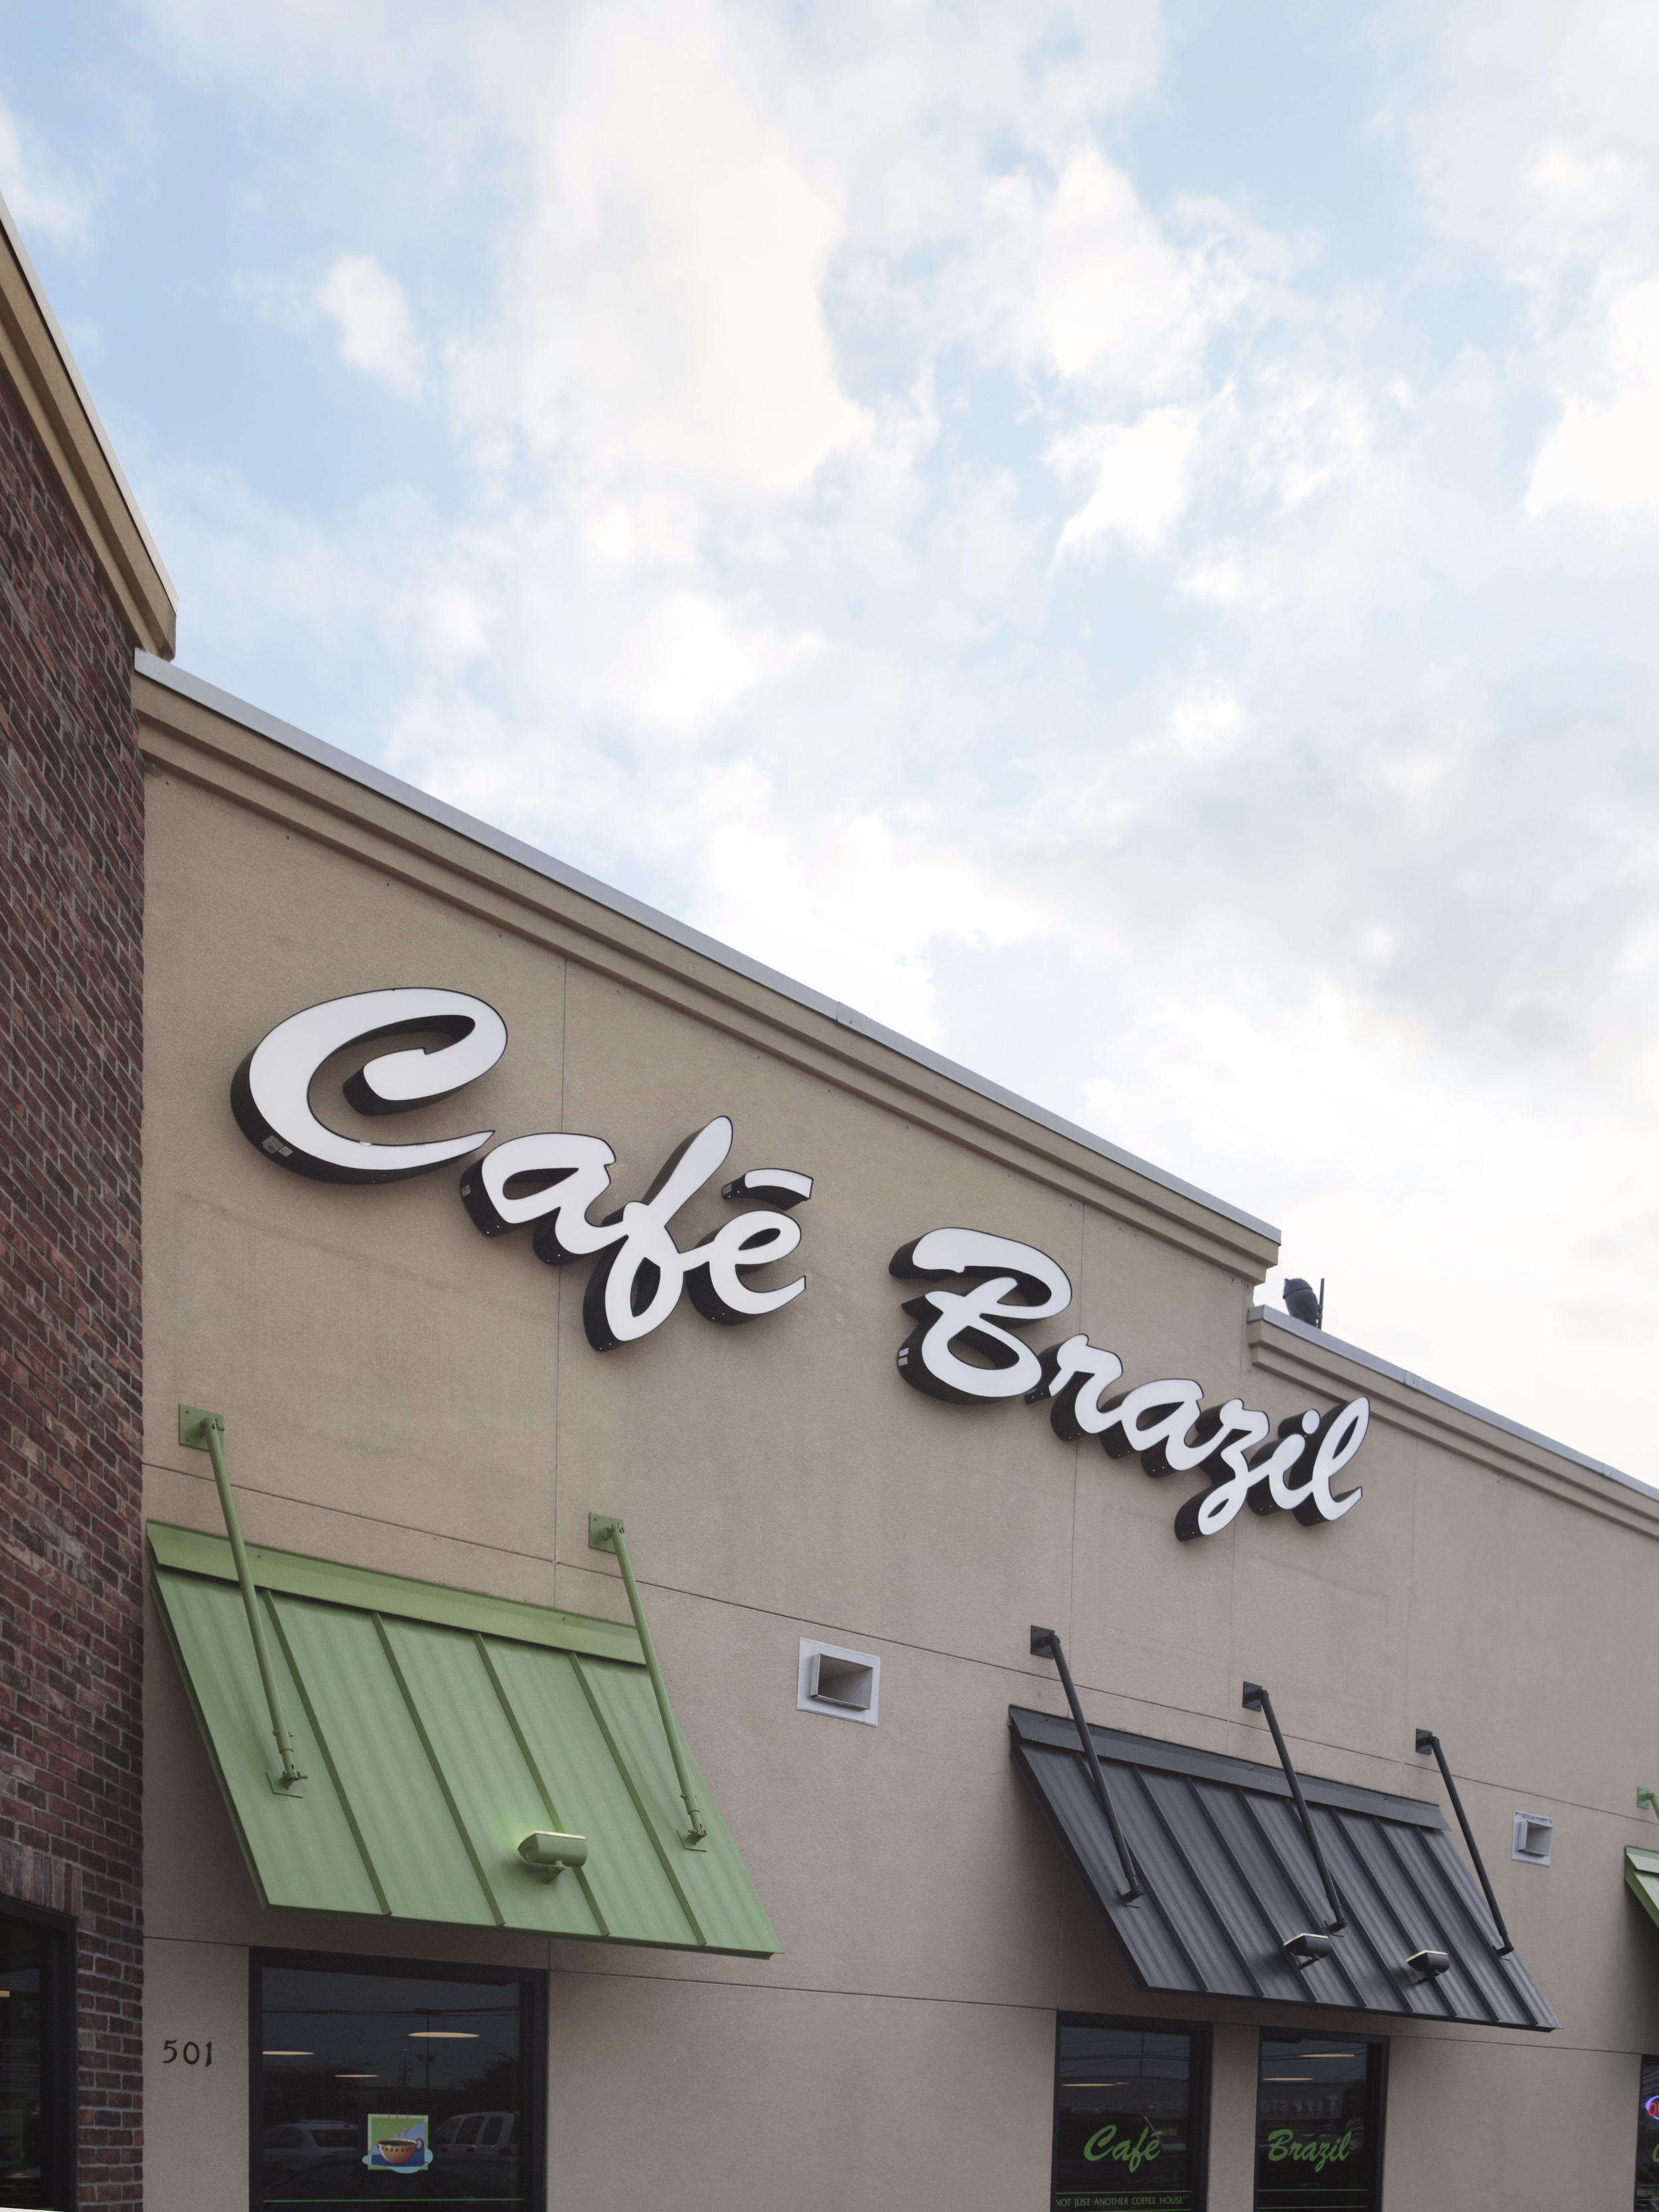 """We got pretty pumped about Cafe Brazil opening in Denton last year. Then, it opened and we were all kinda like, """"Meh."""""""